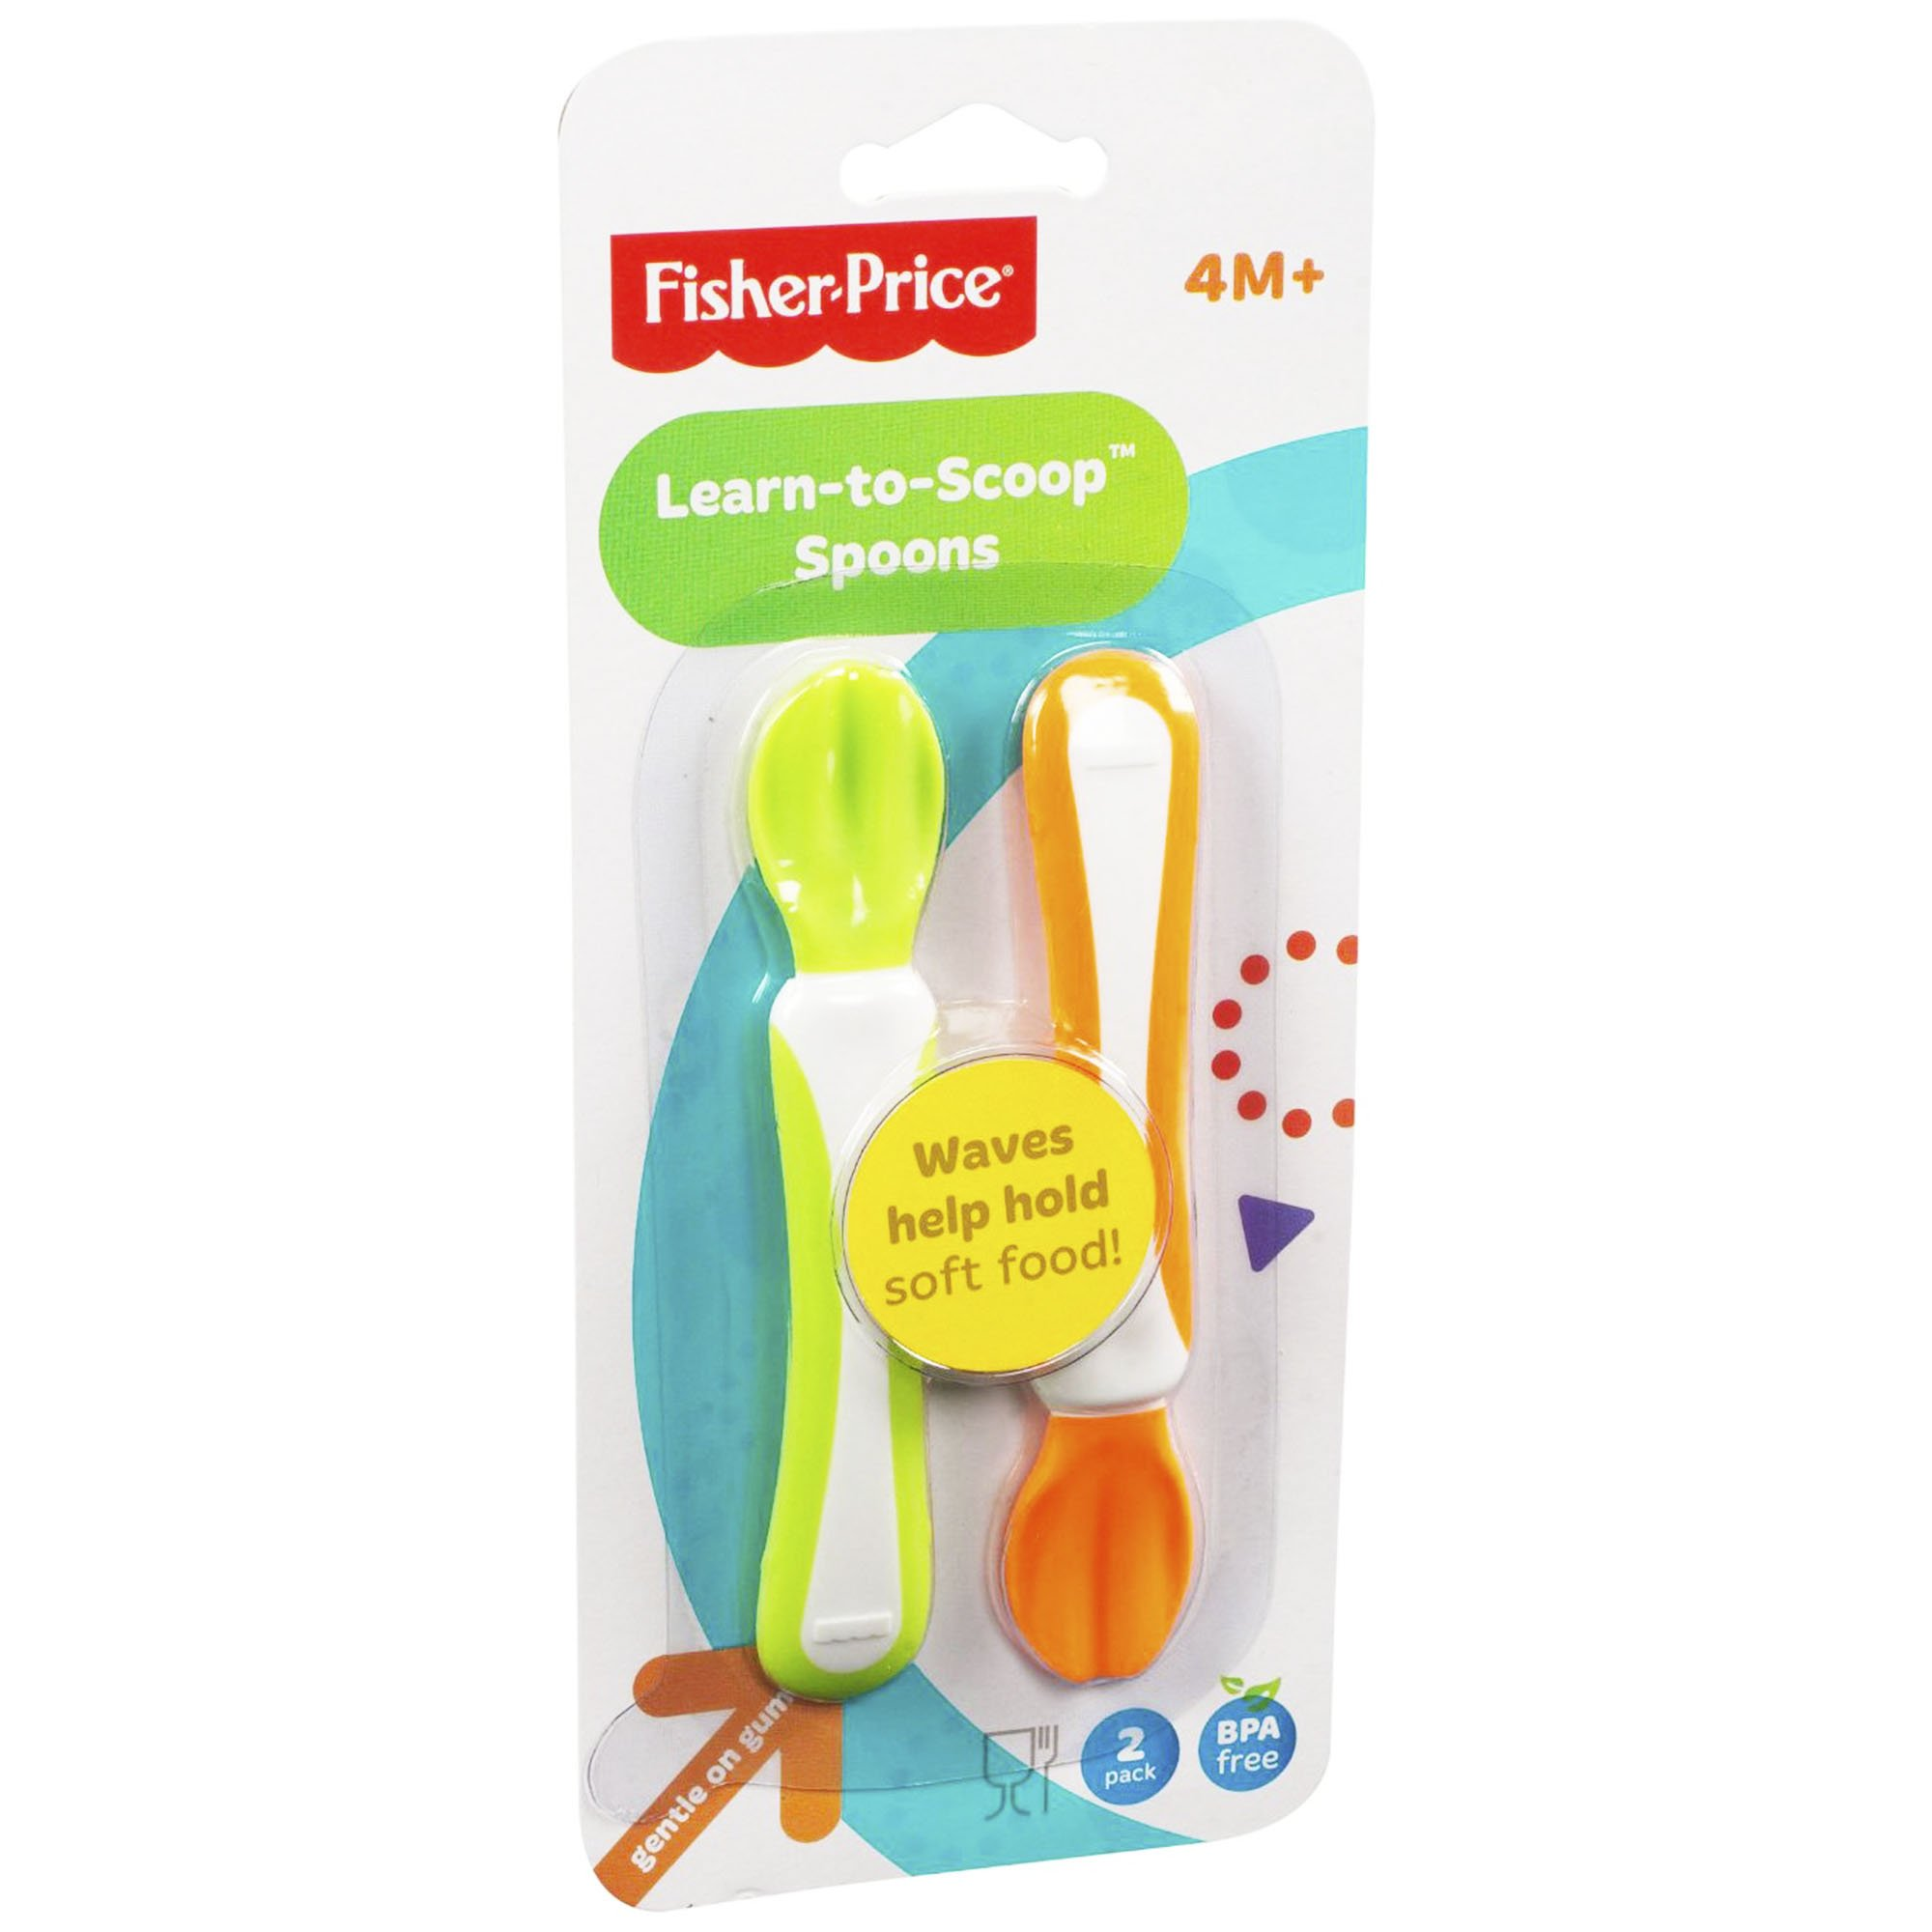 Fisher Price Training Spoons (2 pack) -- Learn to Scoop Spoons (BPA Free)